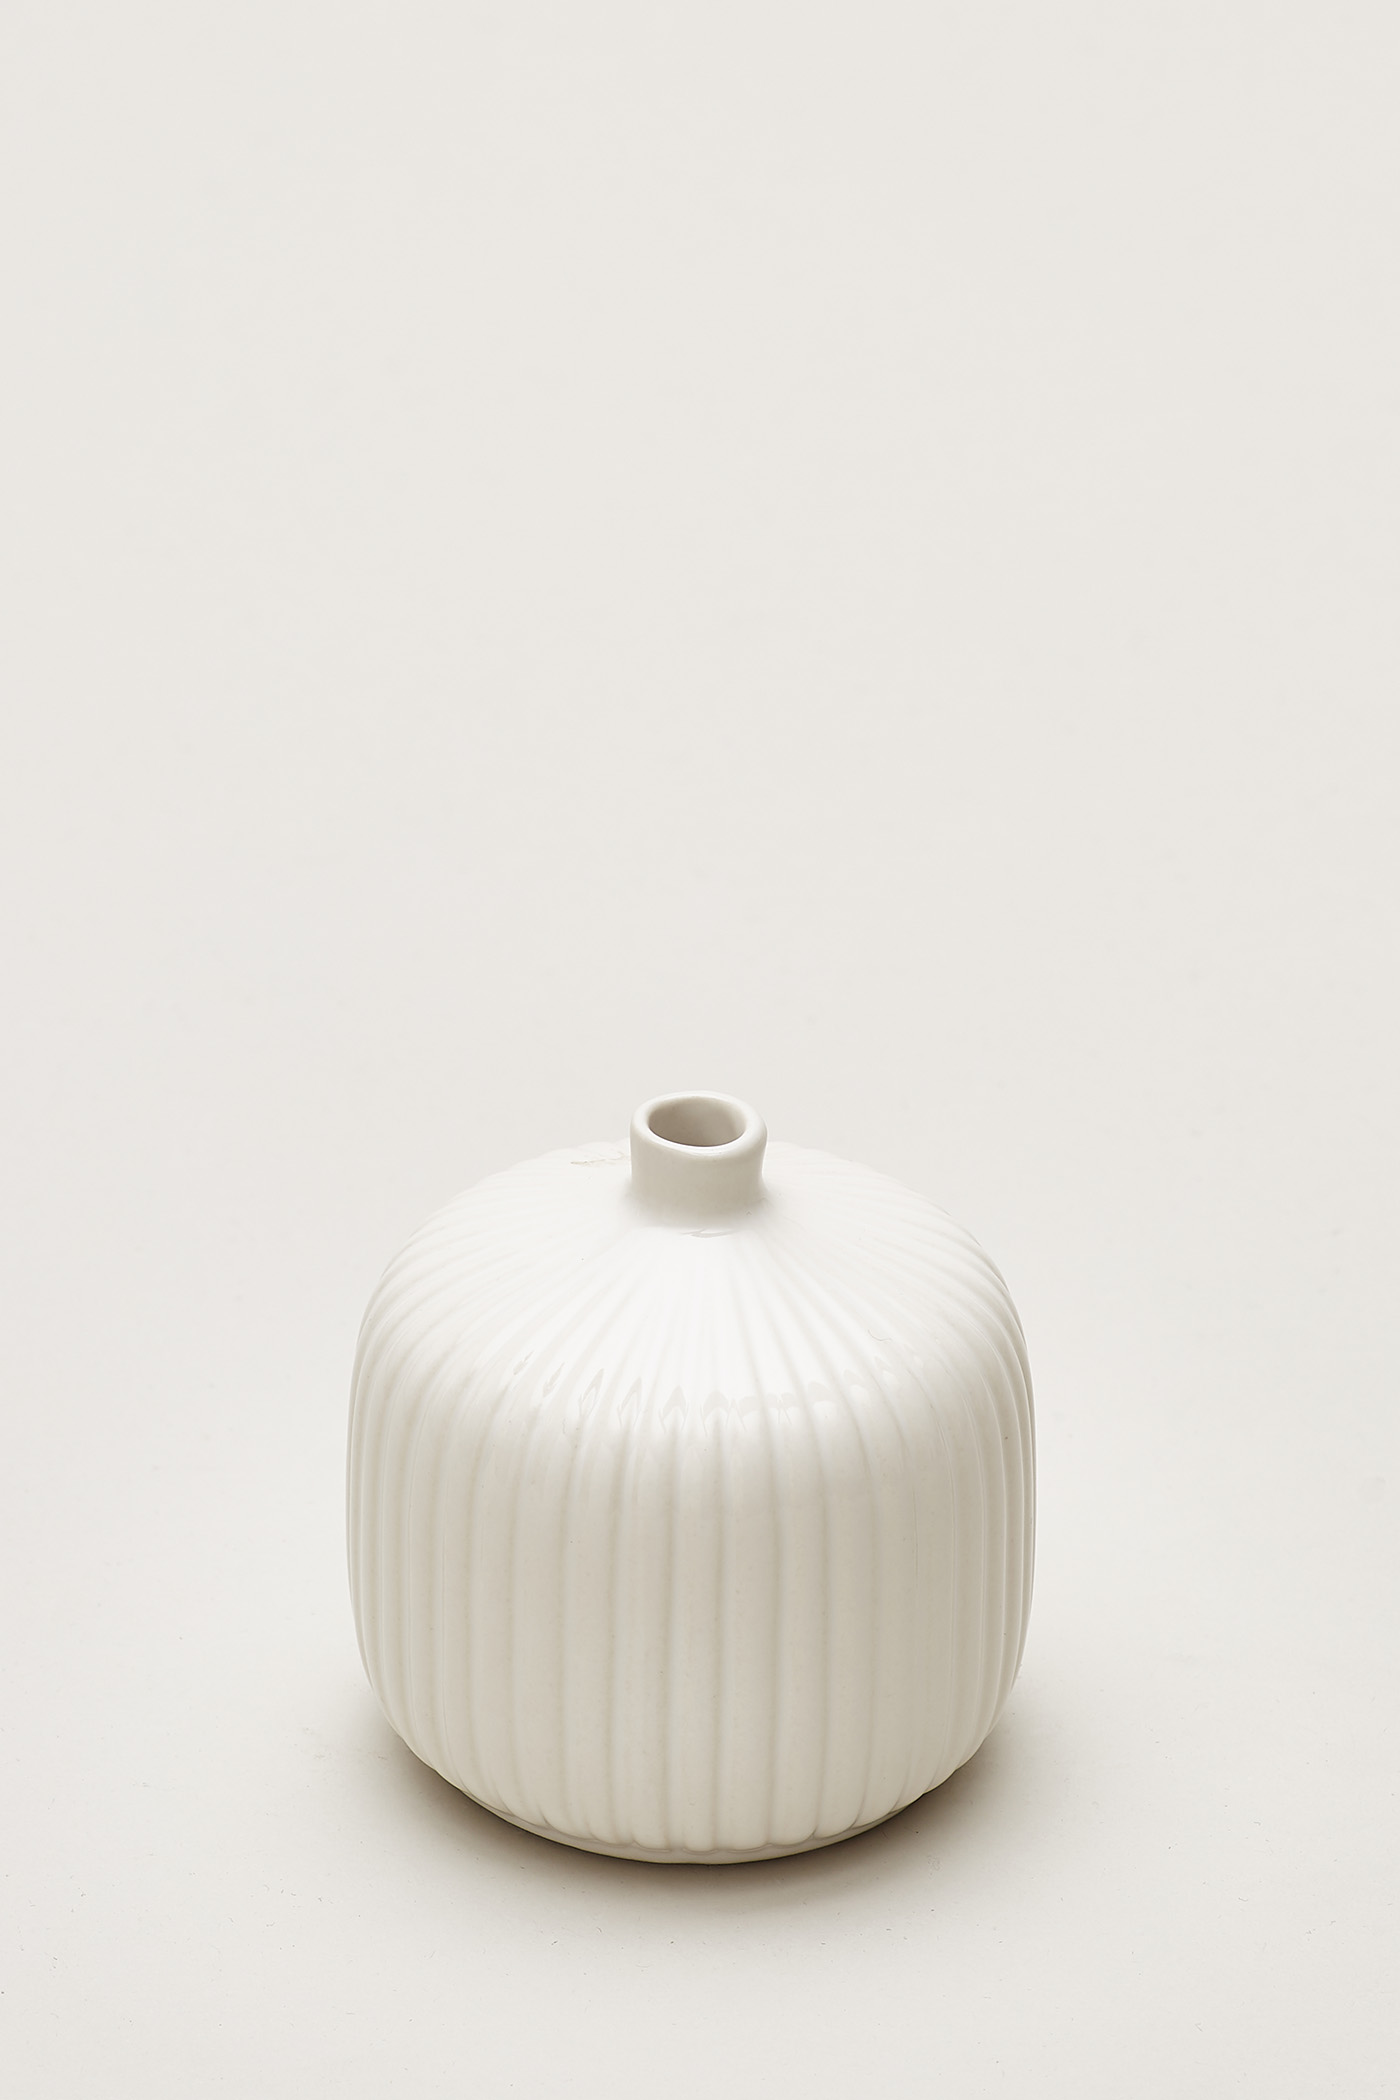 Nilsen Reeded Small Round Vase